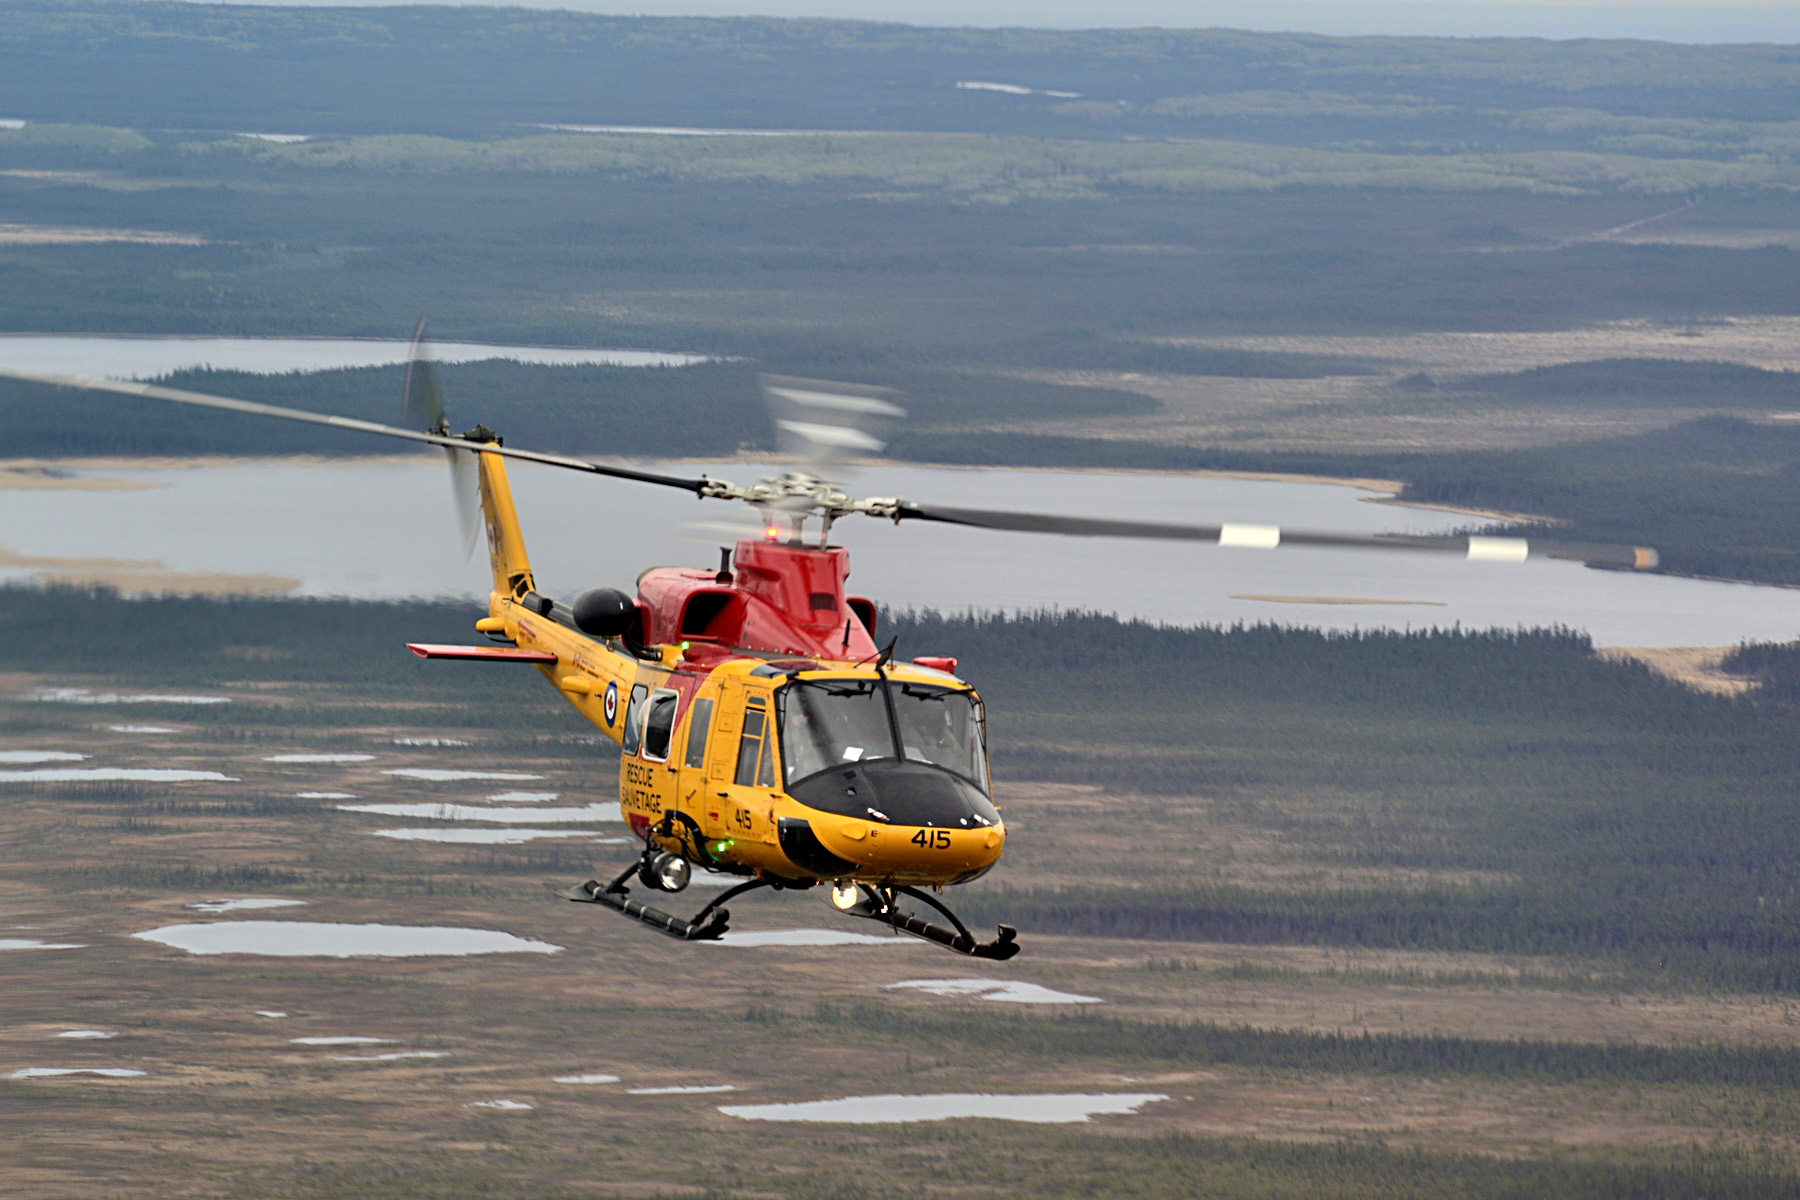 A CH-146 Griffon helicopter from 417 Search and Rescue Squadron based in Cold Lake, Alberta conducts operations over northern Alberta while providing assistance to the province during wildfires near Fort McMurray on May 9, 2016. Photo: MCpl Brandon O'Connell, 3 CDN DIV PA